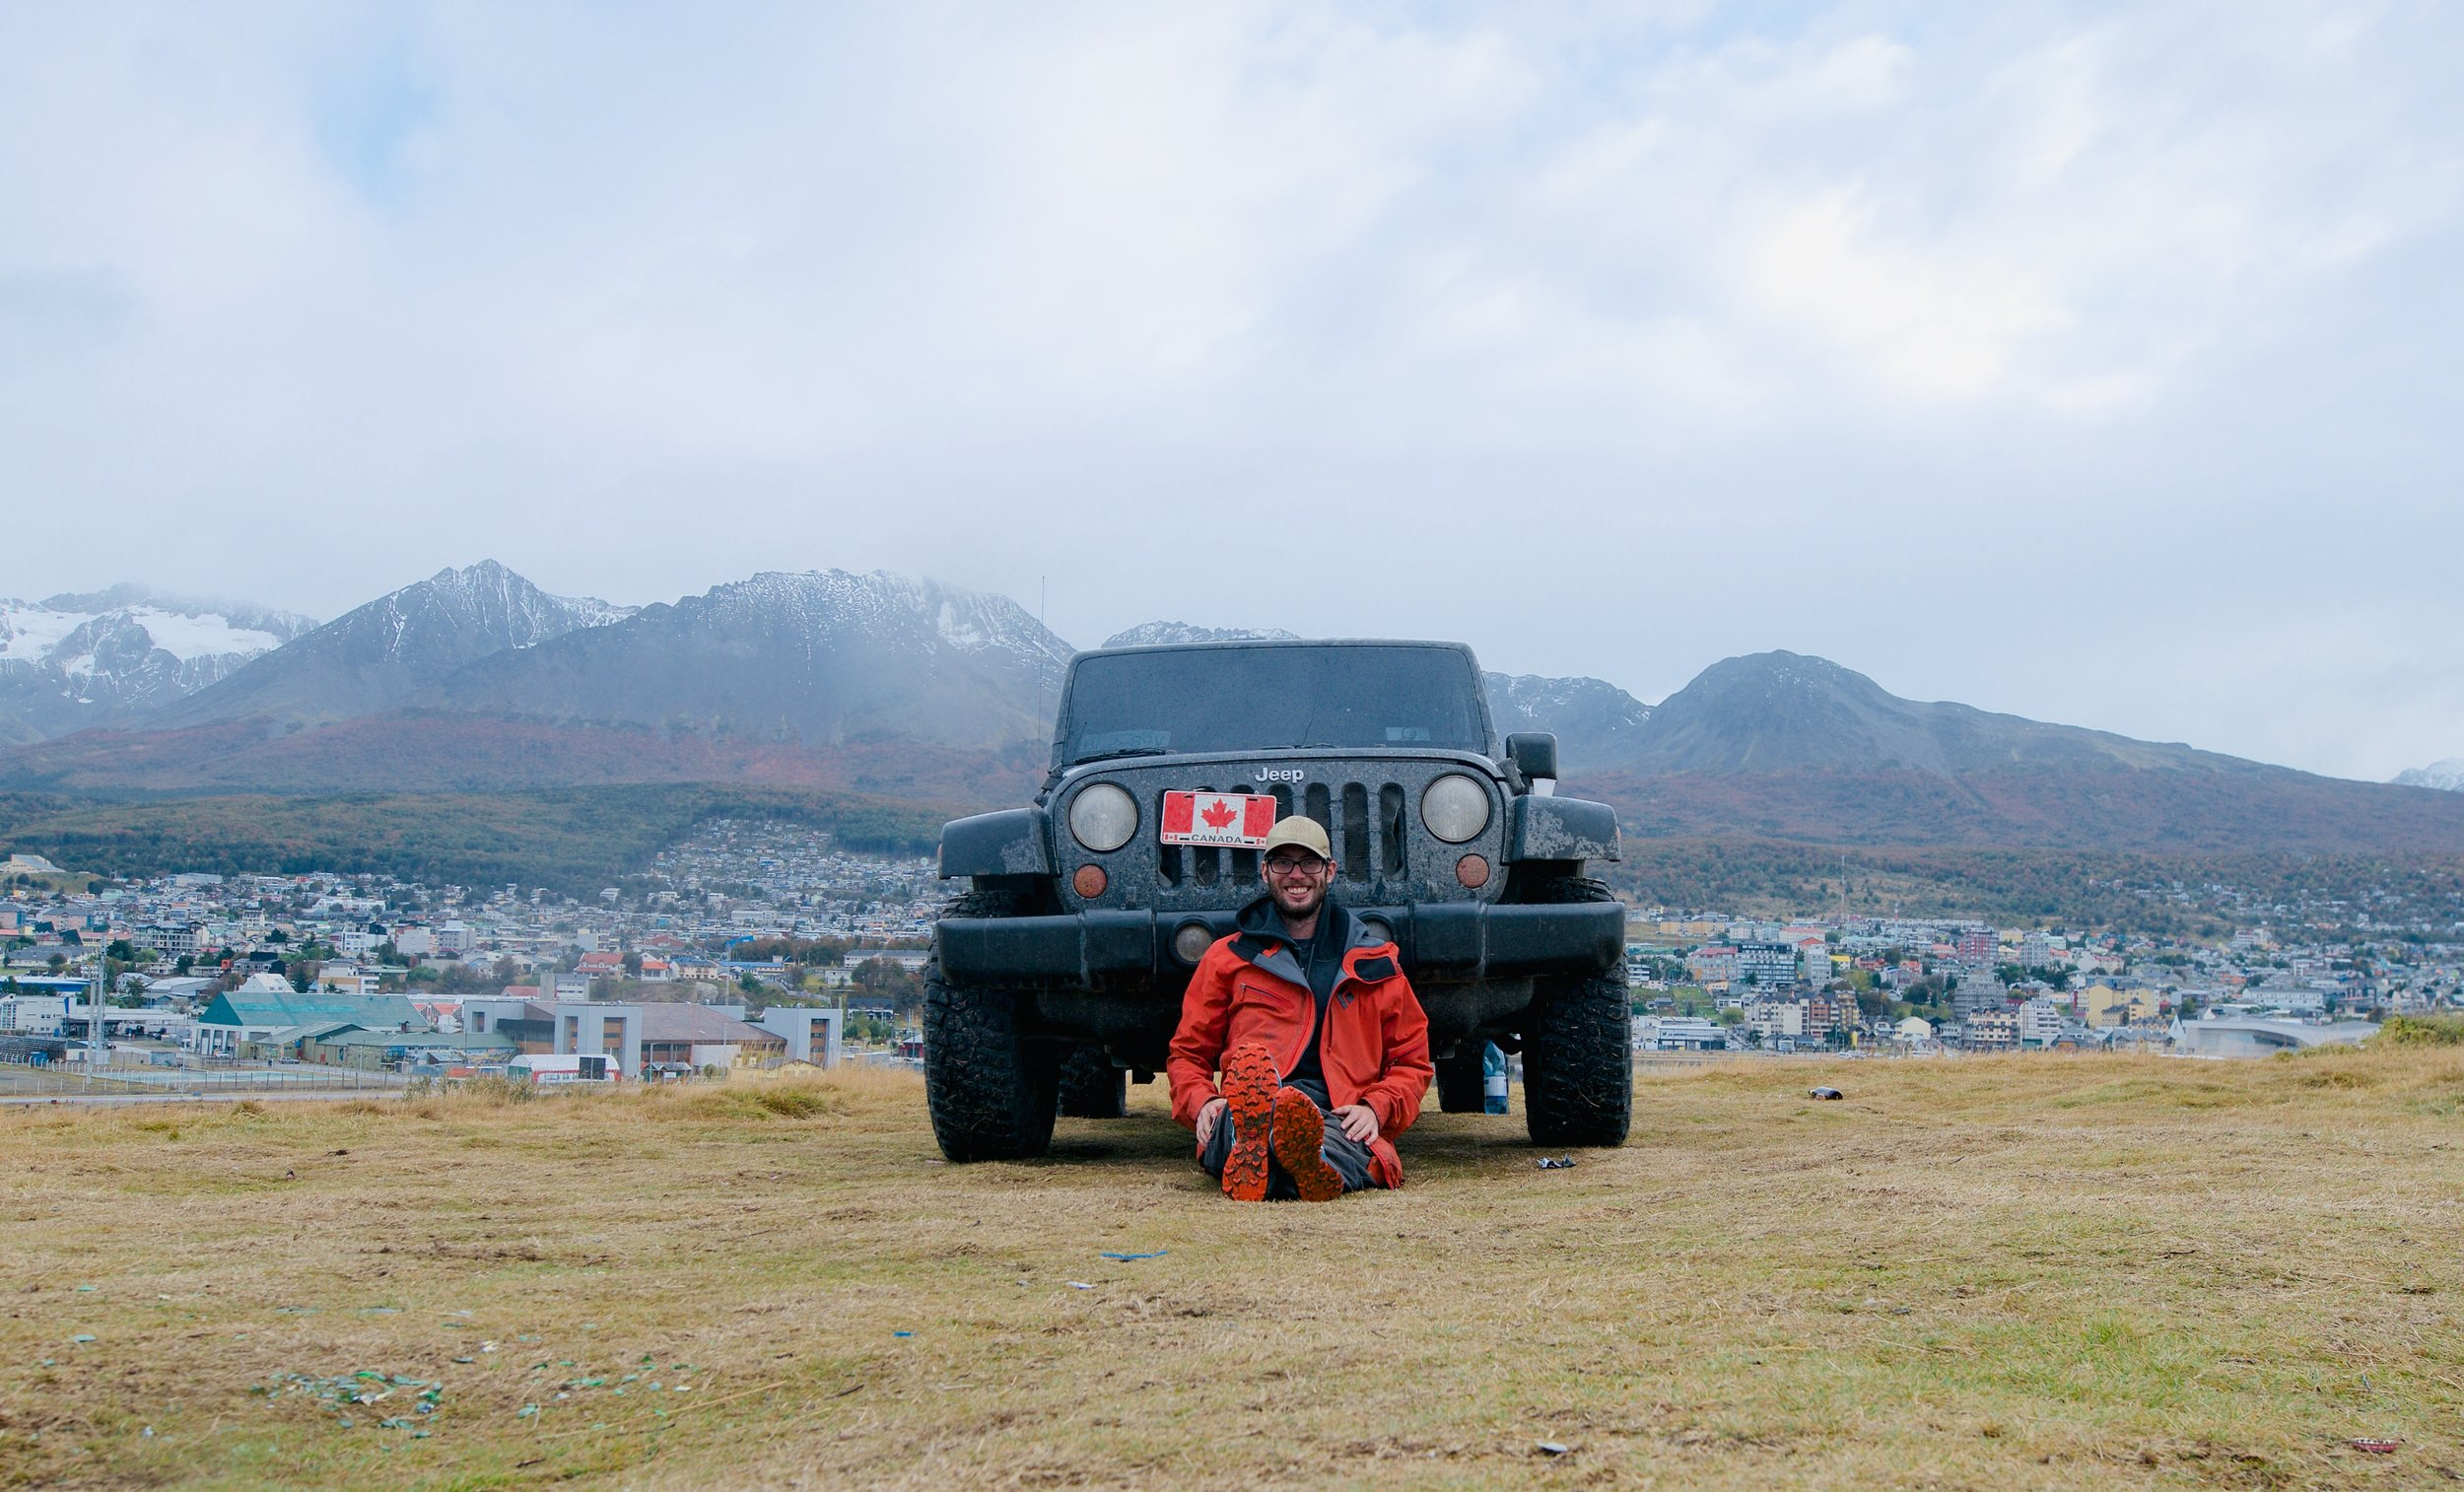 Jeep in Ushuaia panamerican